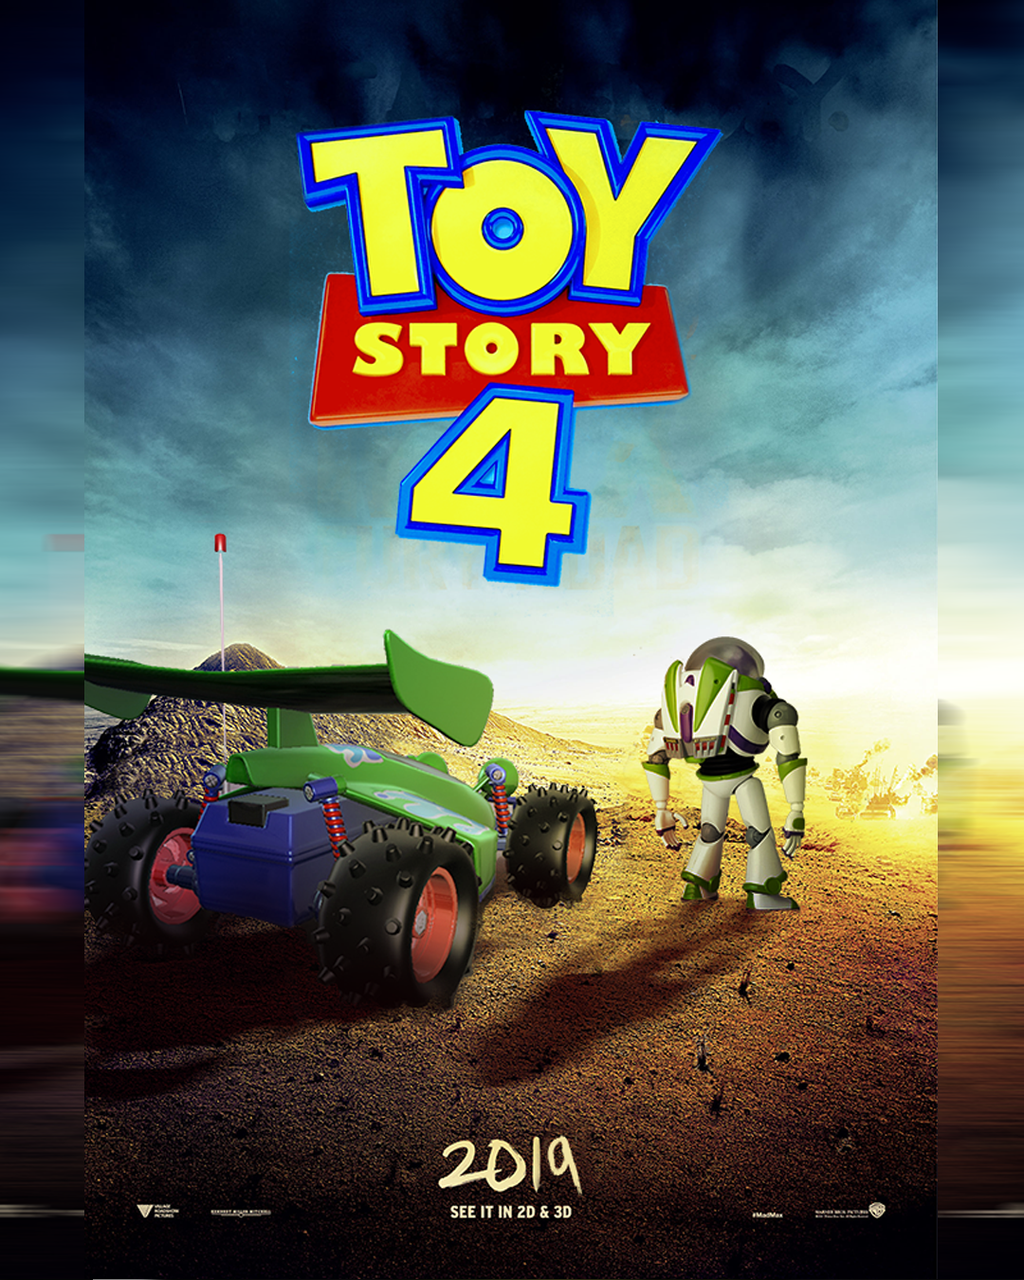 Toy Story 4 Poster By MessyPandas On DeviantArt